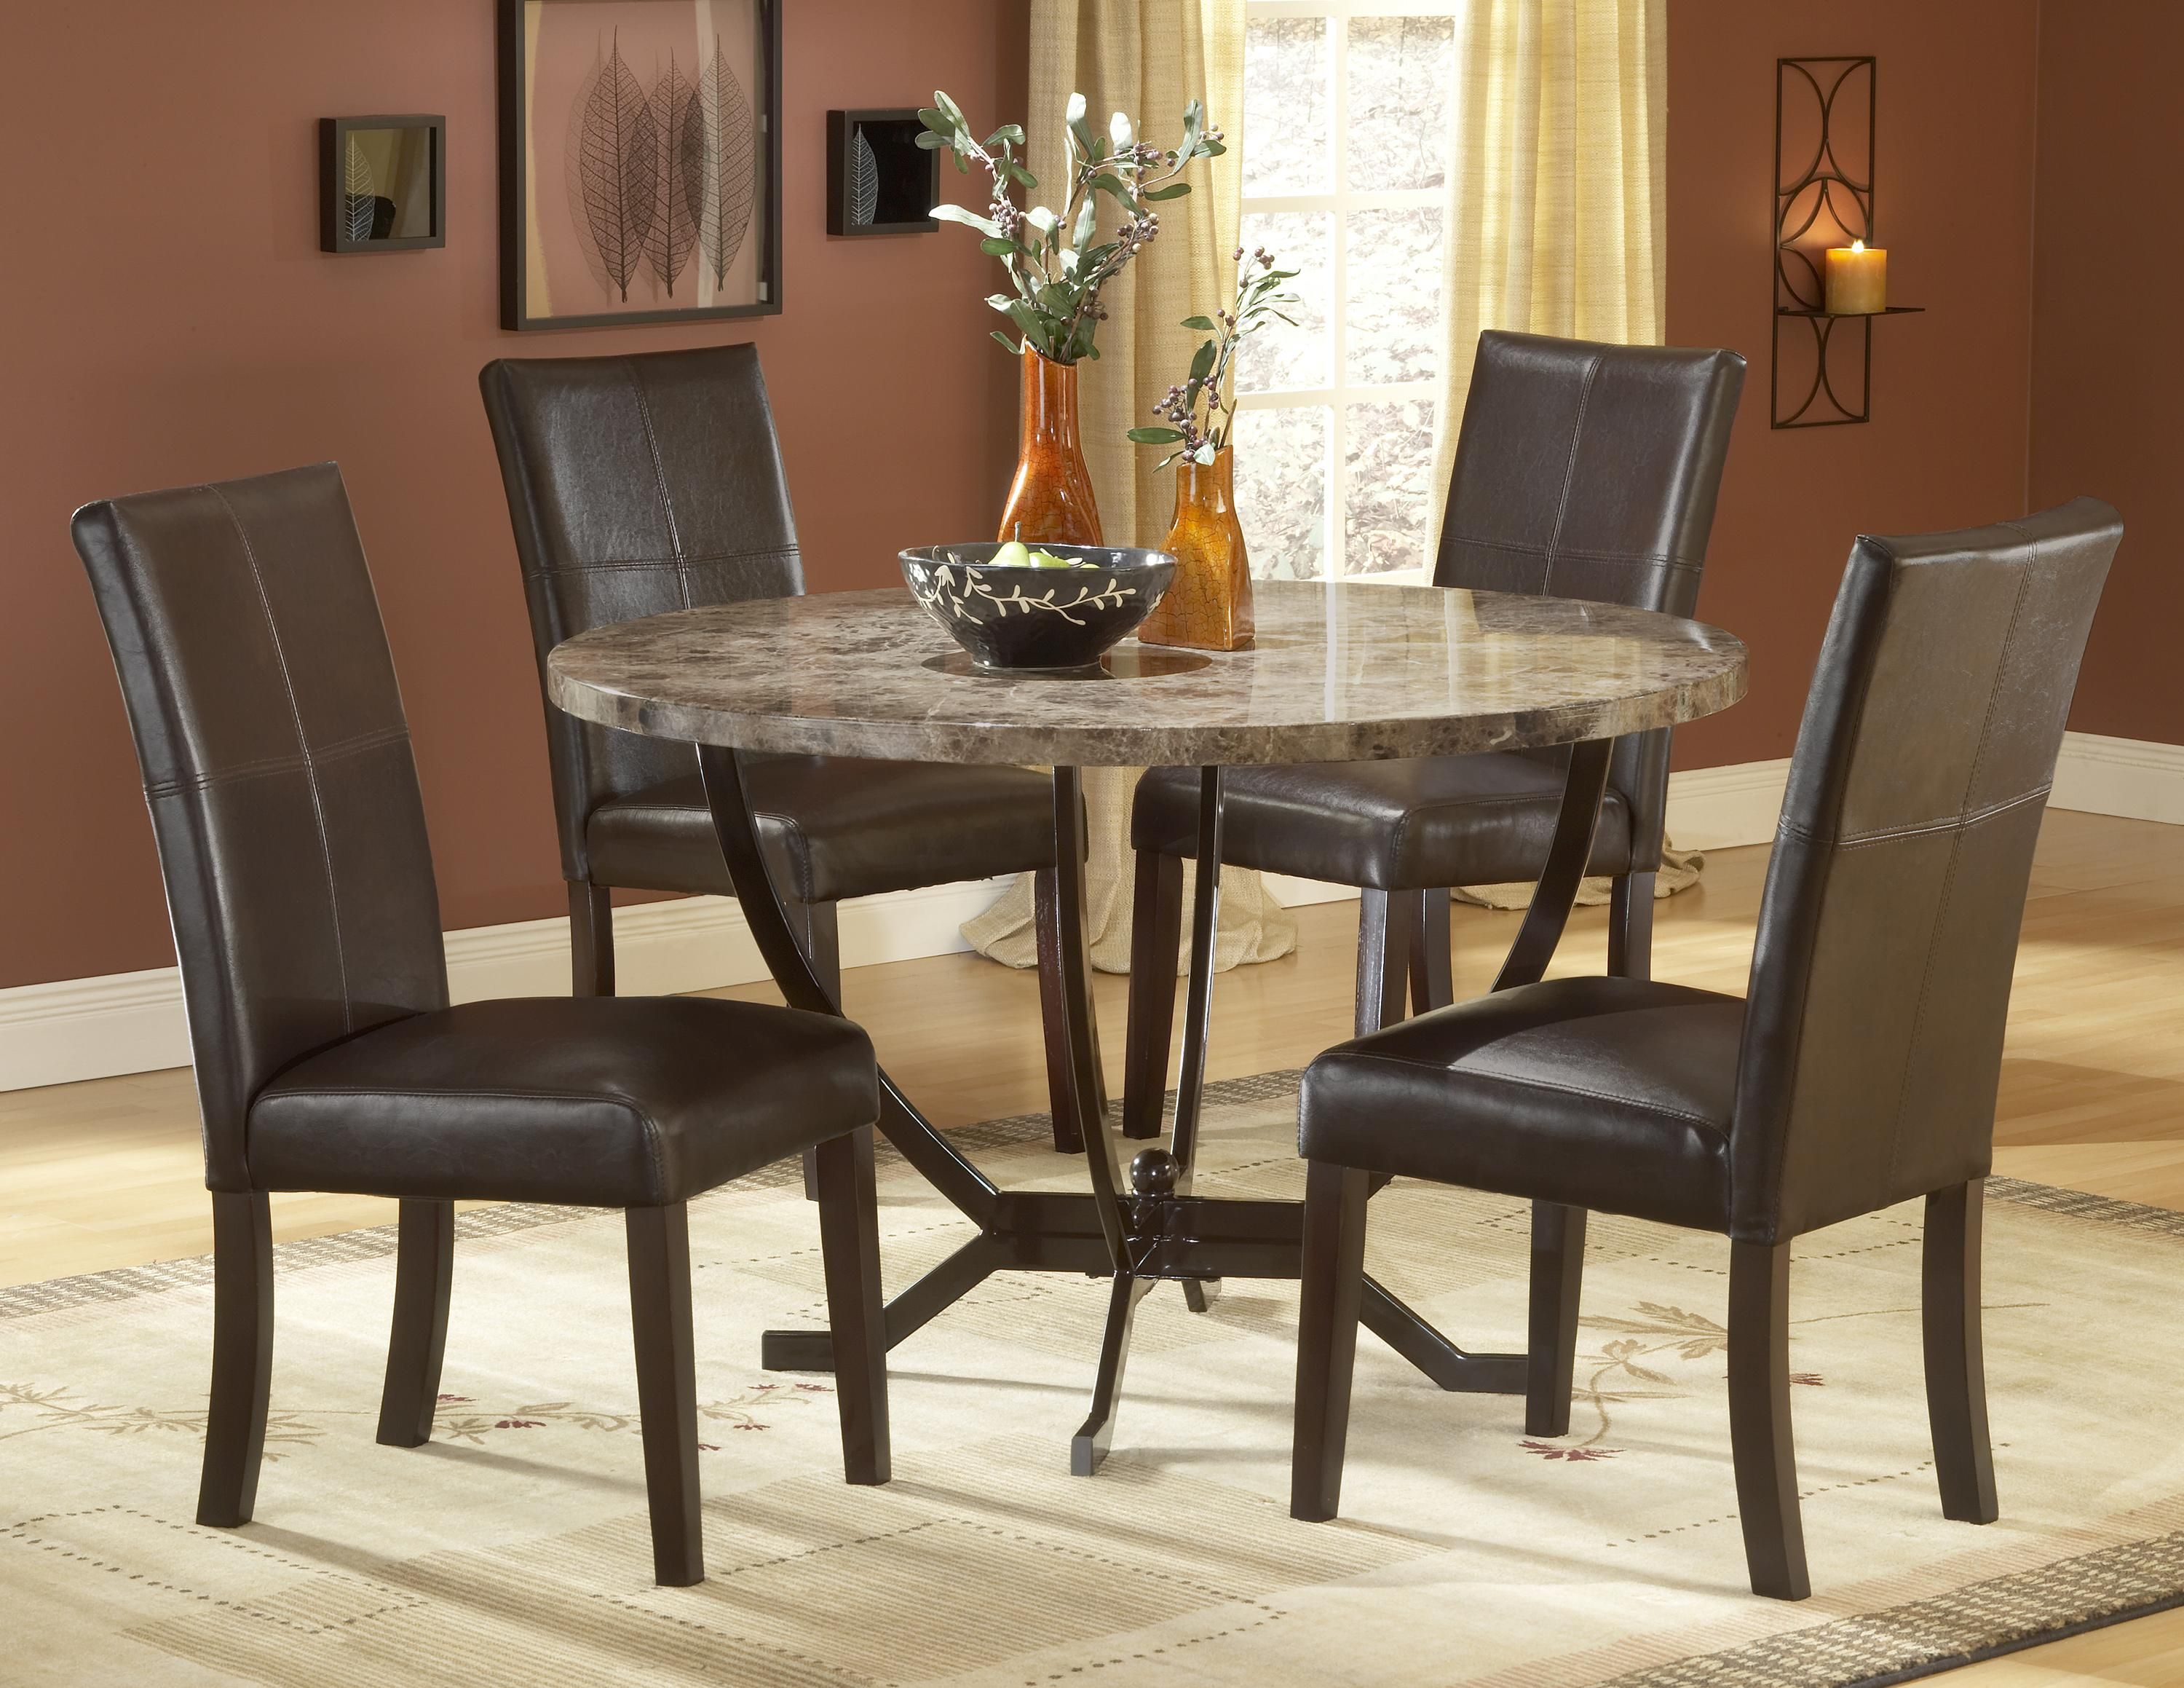 10 small dinette set design - Kitchen Dining Chairs